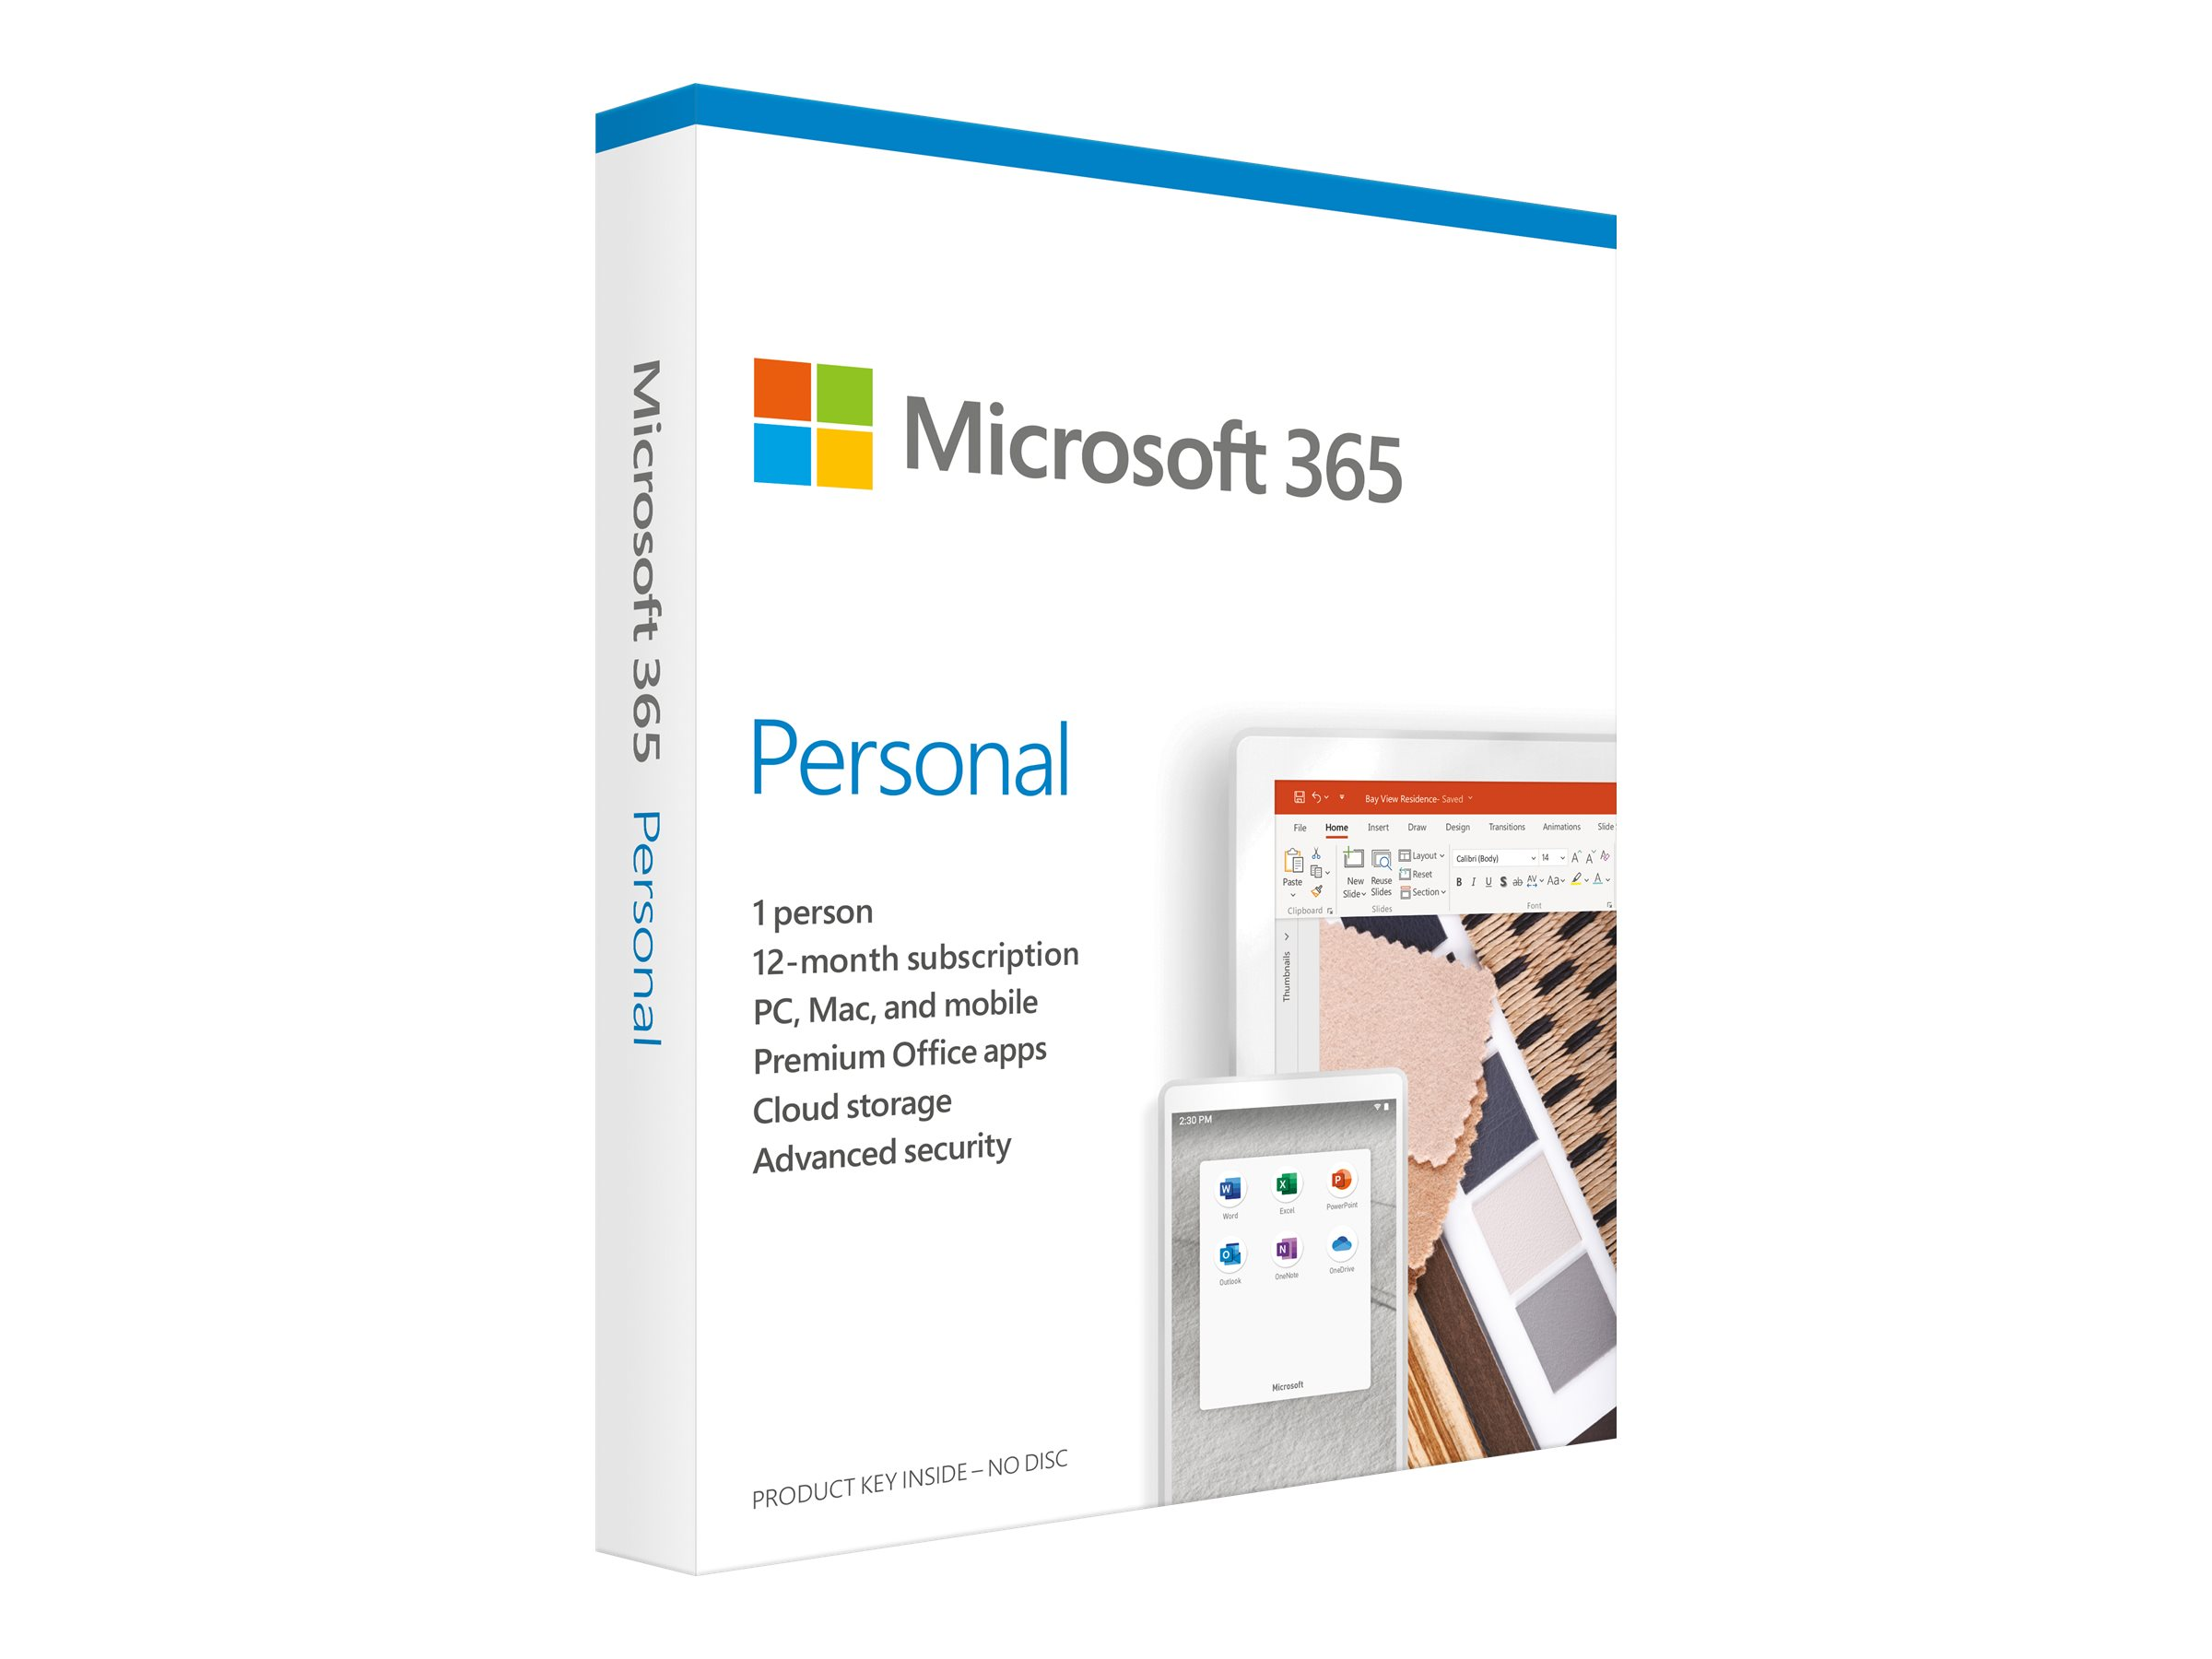 Microsoft 365 Single - Box-Pack (15 Monate) - 1 Person - ohne Medien, P6, ExtraTime - Win, Mac, Android, iOS - Französisch